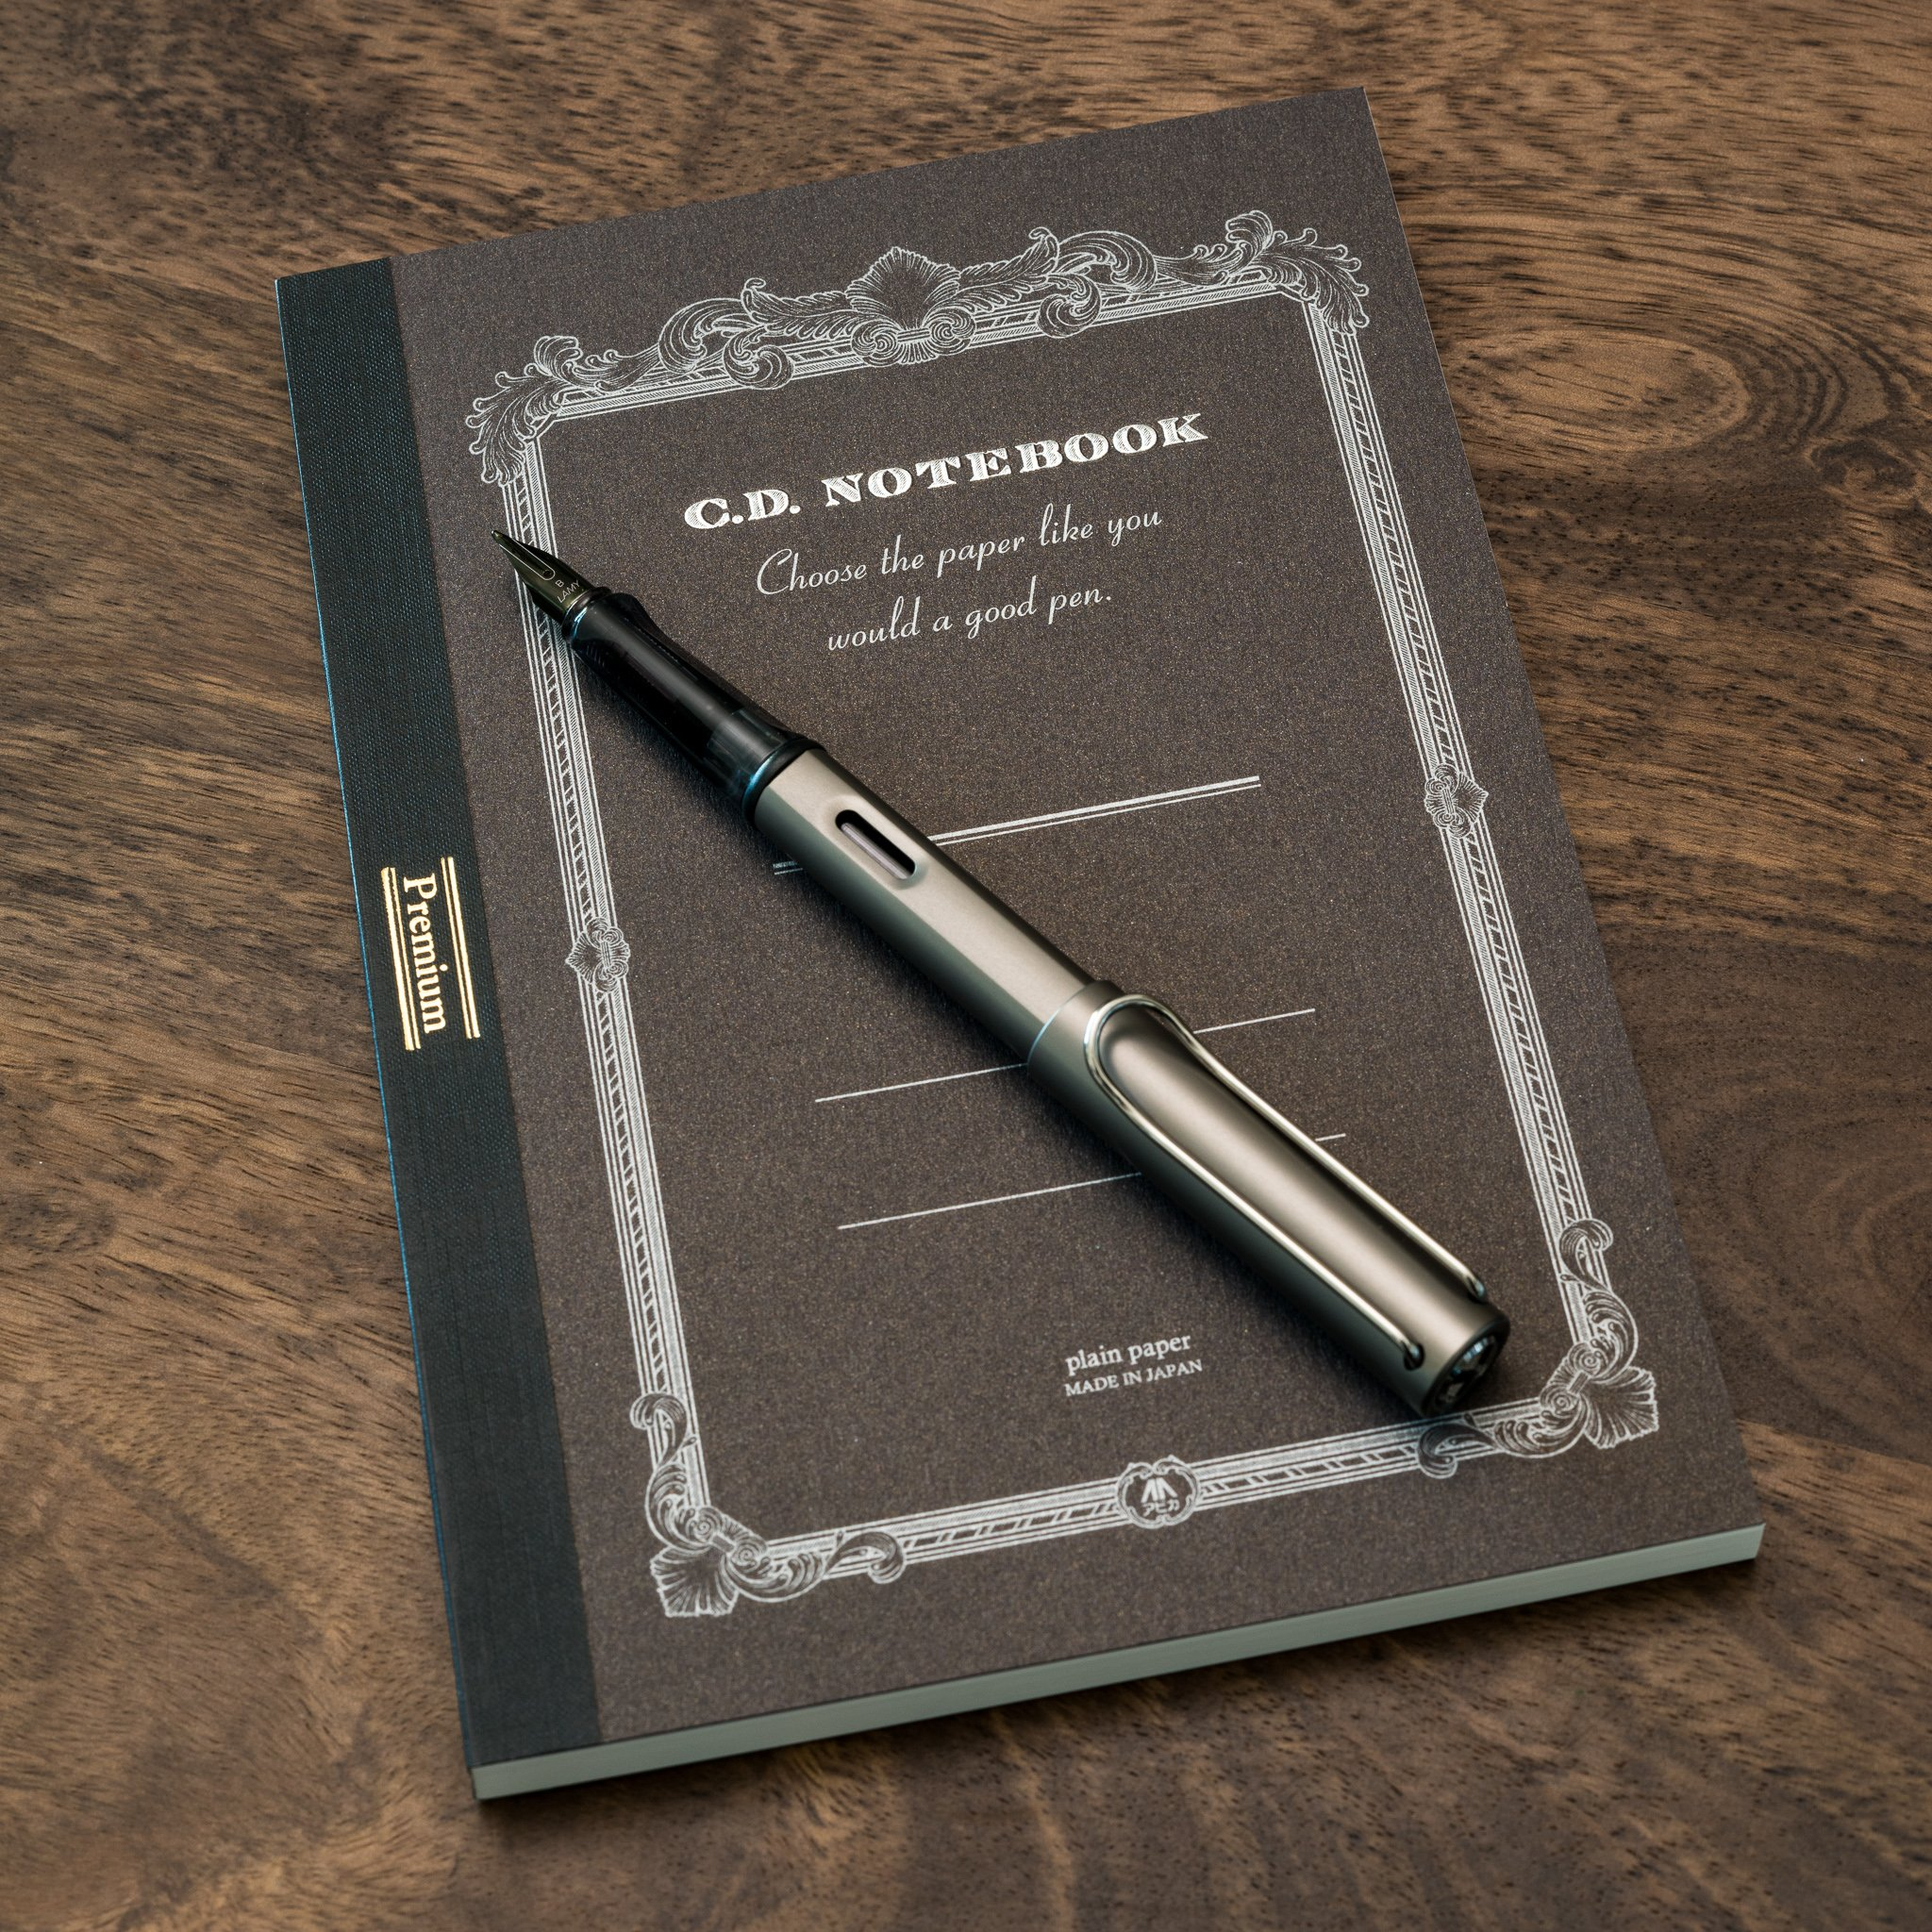 apica cd notebook with lamy lx fountain pen